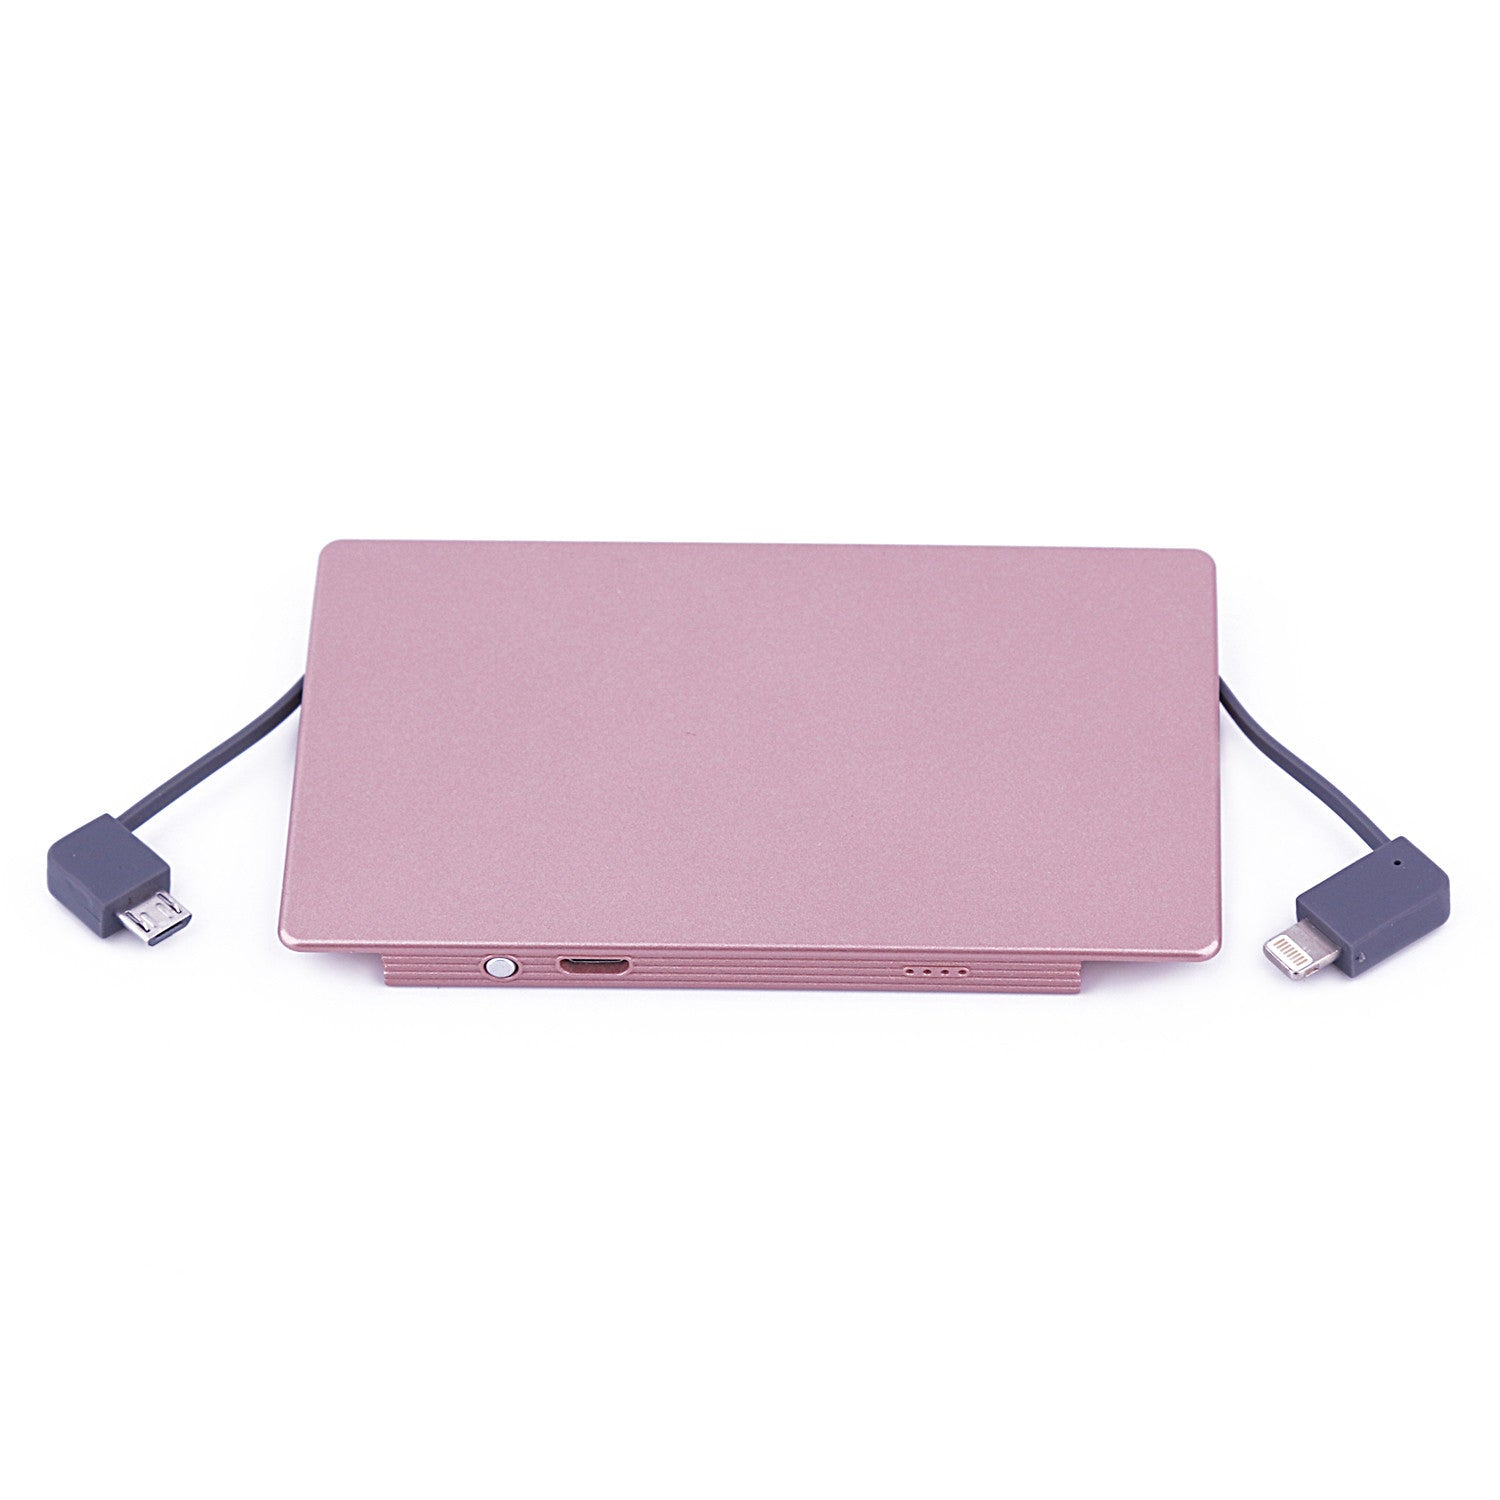 4000 mAh Portable Power Bank Phone Charger - Rose Gold